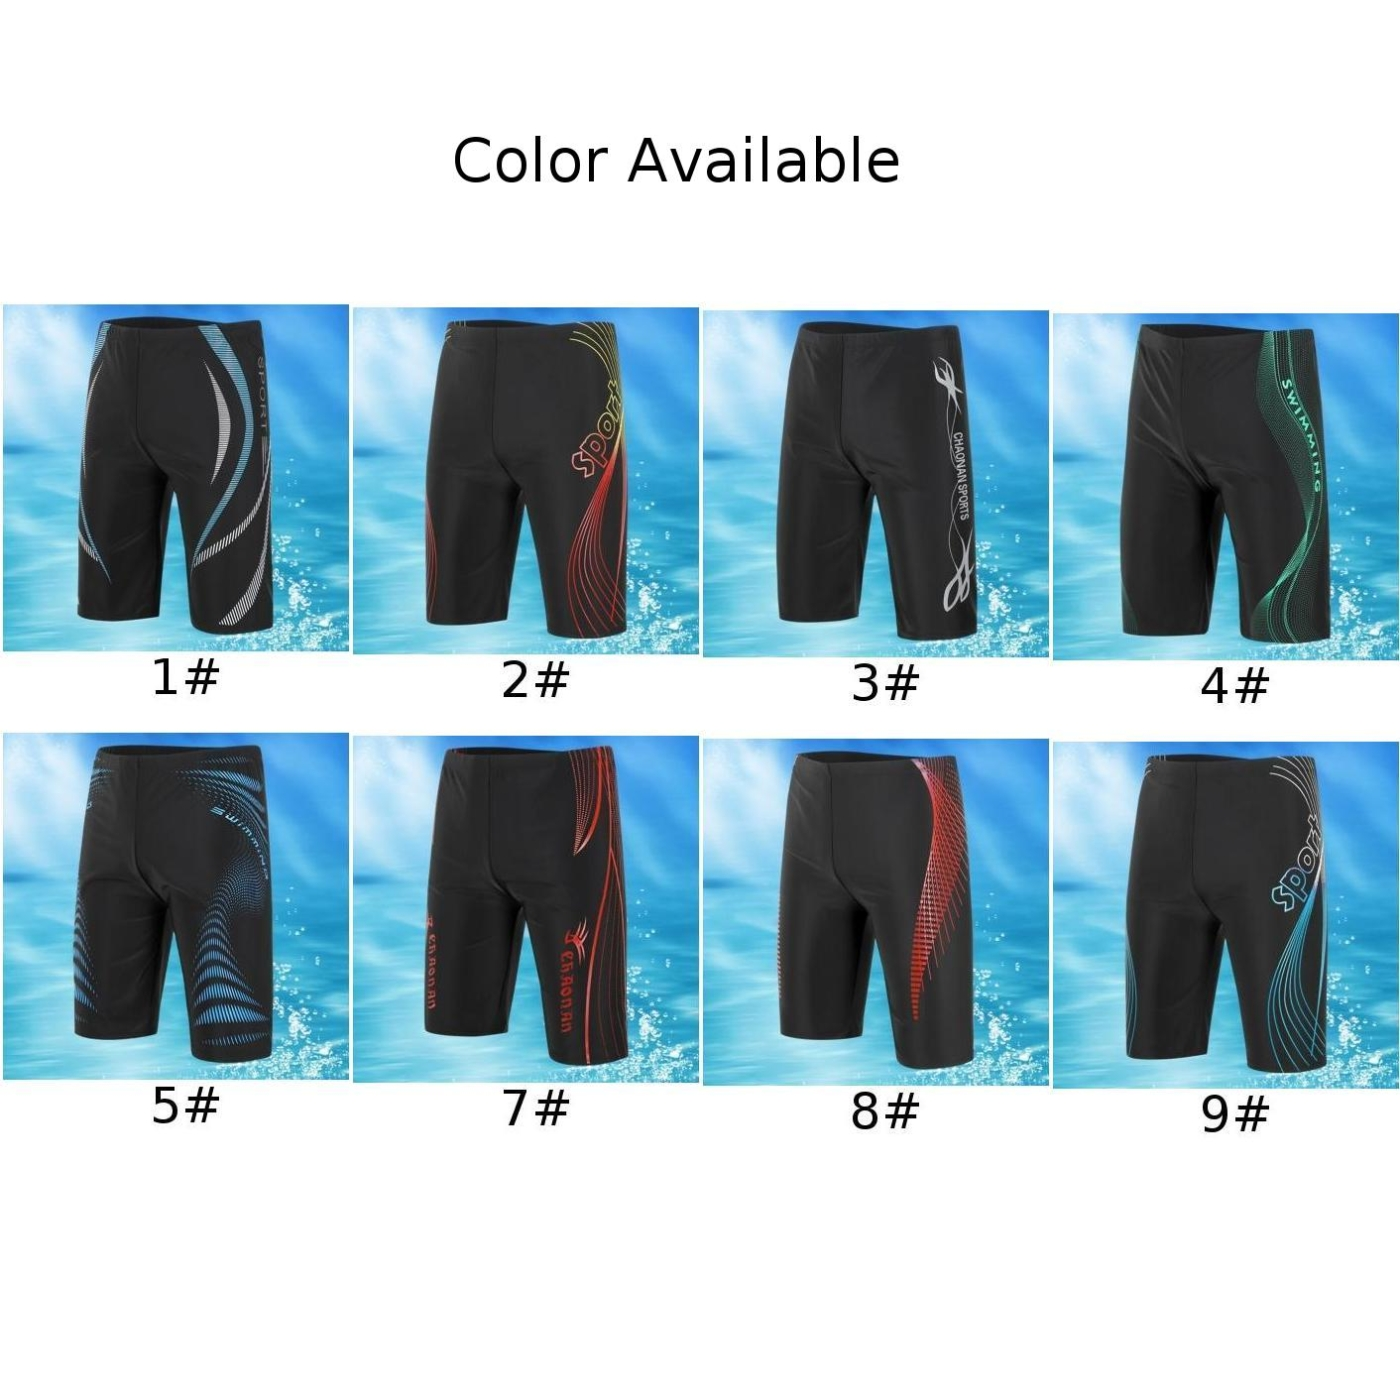 Man Sport Jammers Swim Boxer Trunks Shorts Beach Pants Swimming Quick-dry Shorts Sexy Mesh Breathable Sports Beach Trunks Hot 6